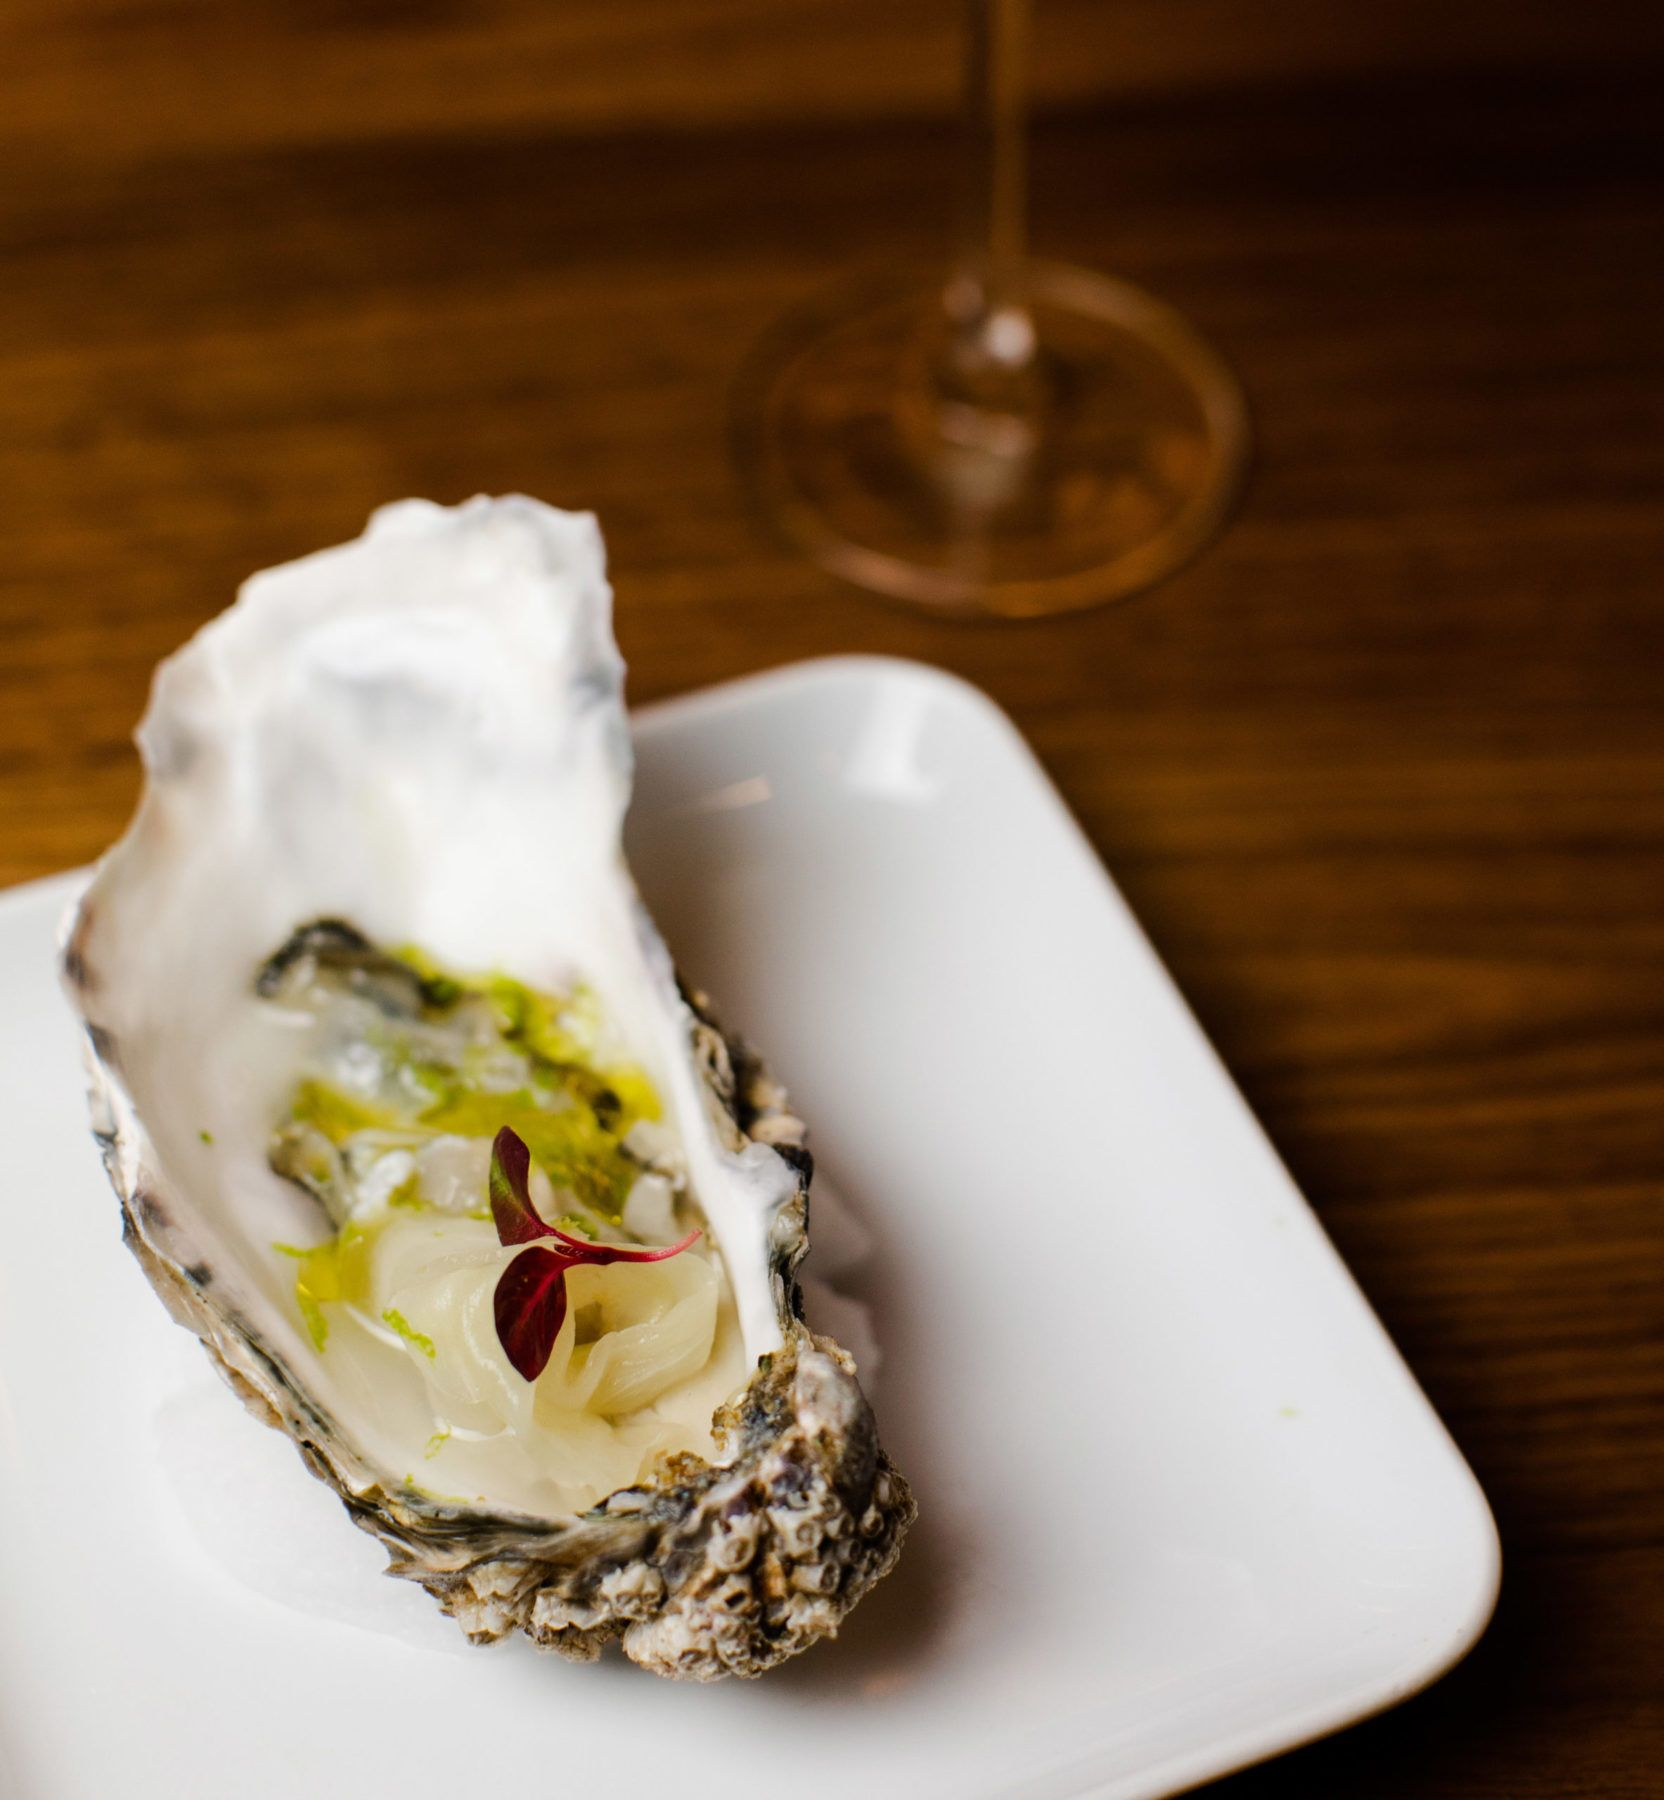 Large Oyster served on white plate